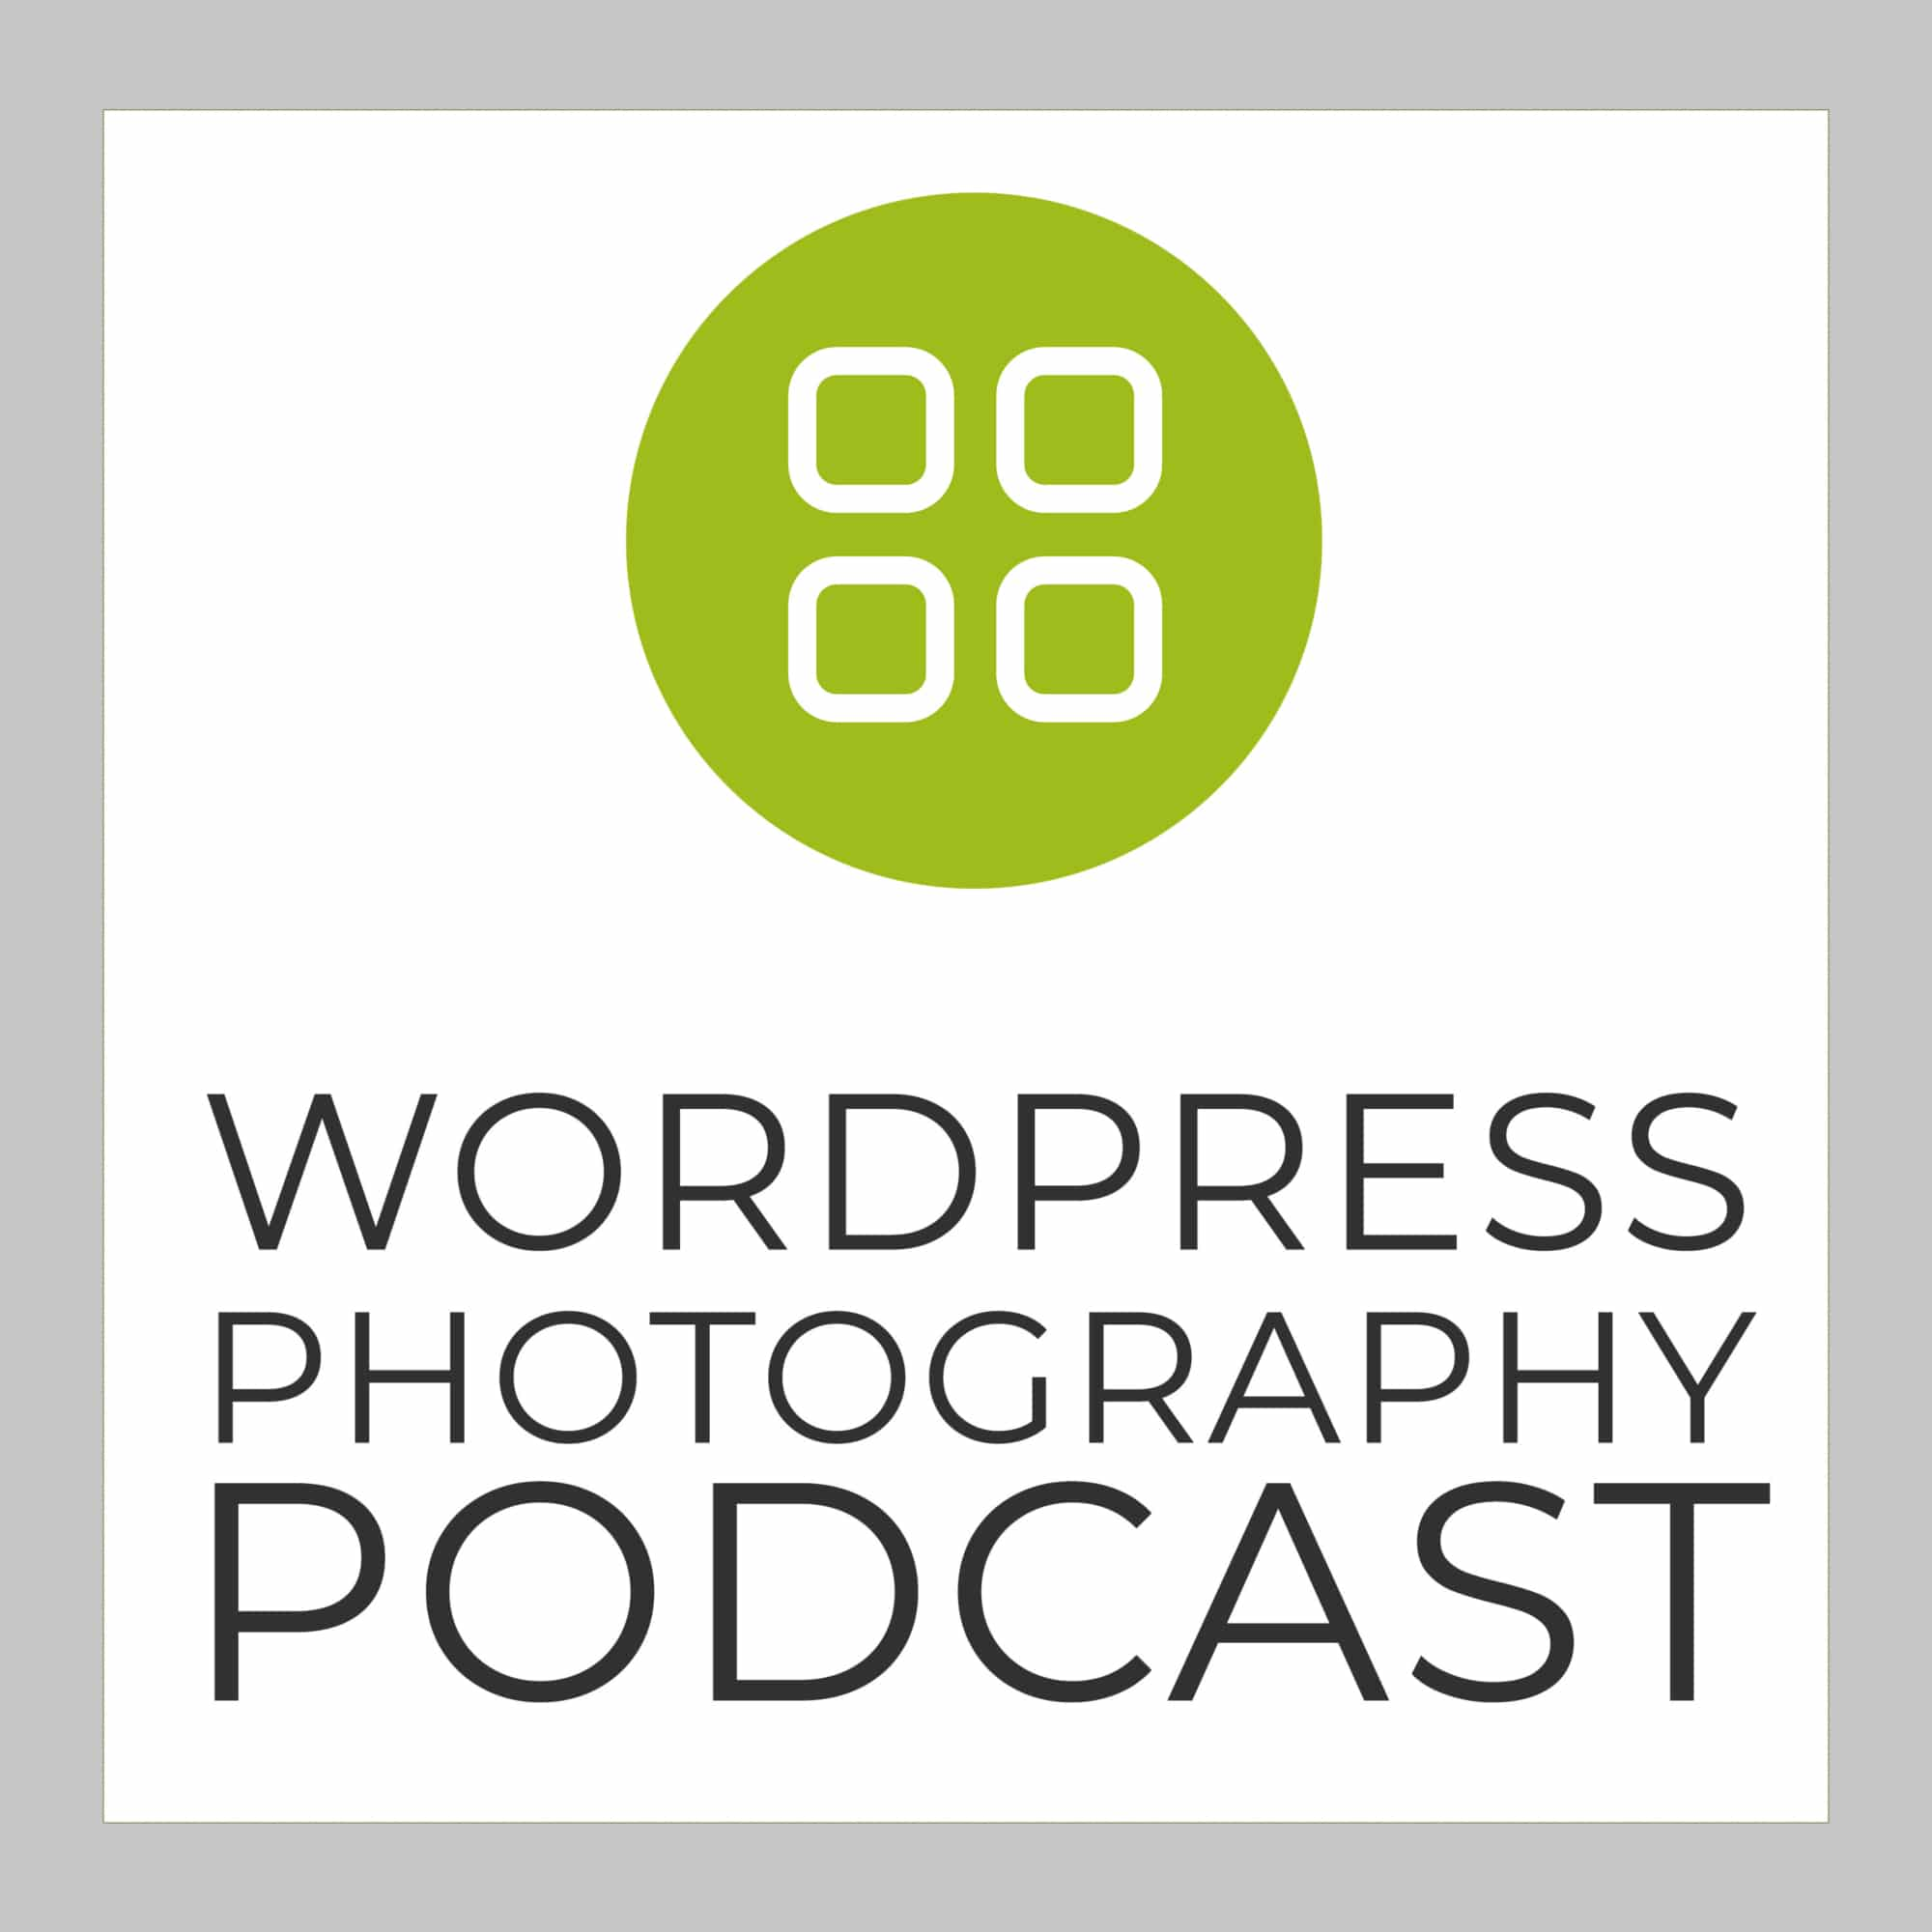 The WordPress Photography Podcast Logo